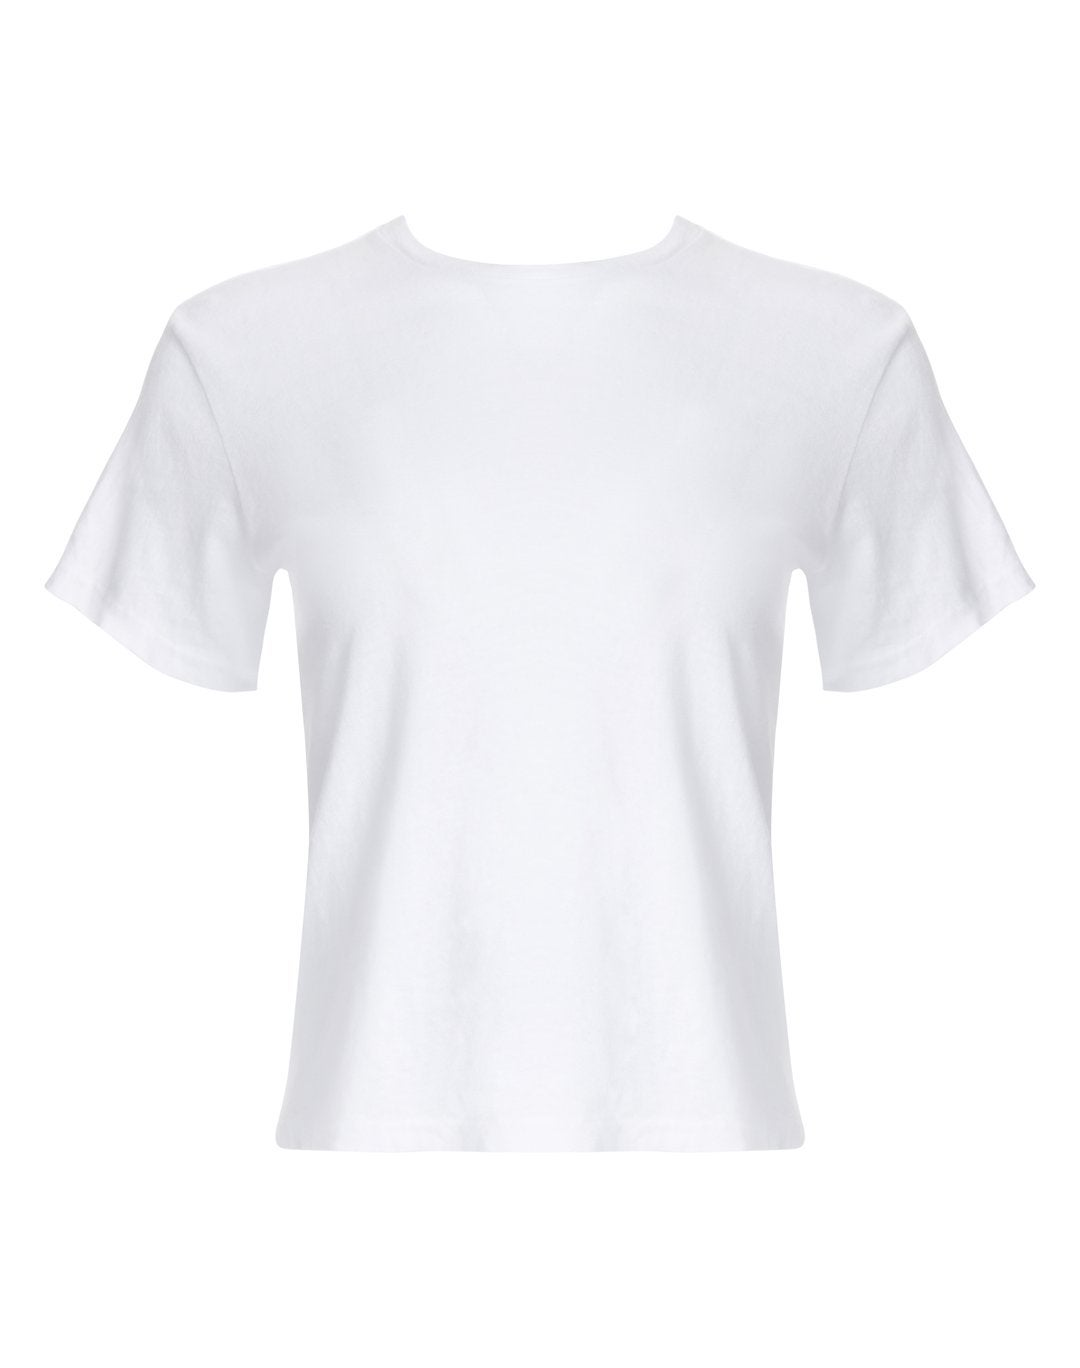 7afffe2affea4 Best Quality Womens White T-Shirts 2019 Brand Reviews